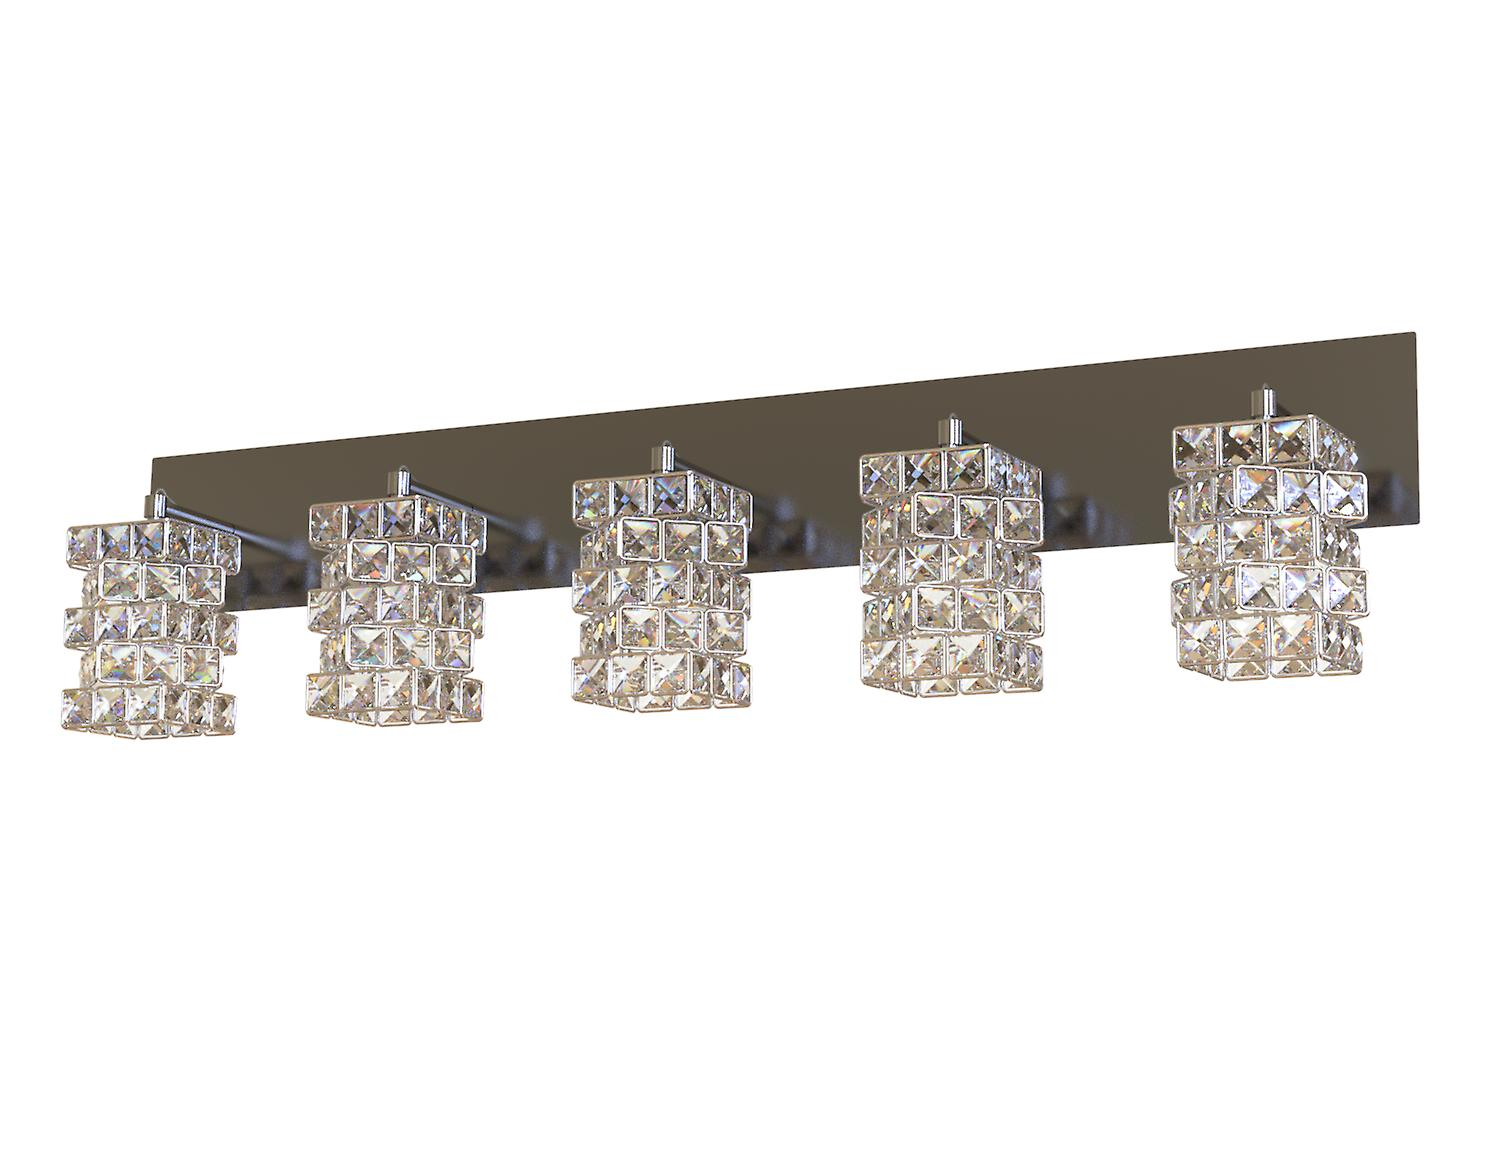 Modern Chrome Bead LED Light Fixture Wall Mount Sconce Pendant Lamp Hallway New